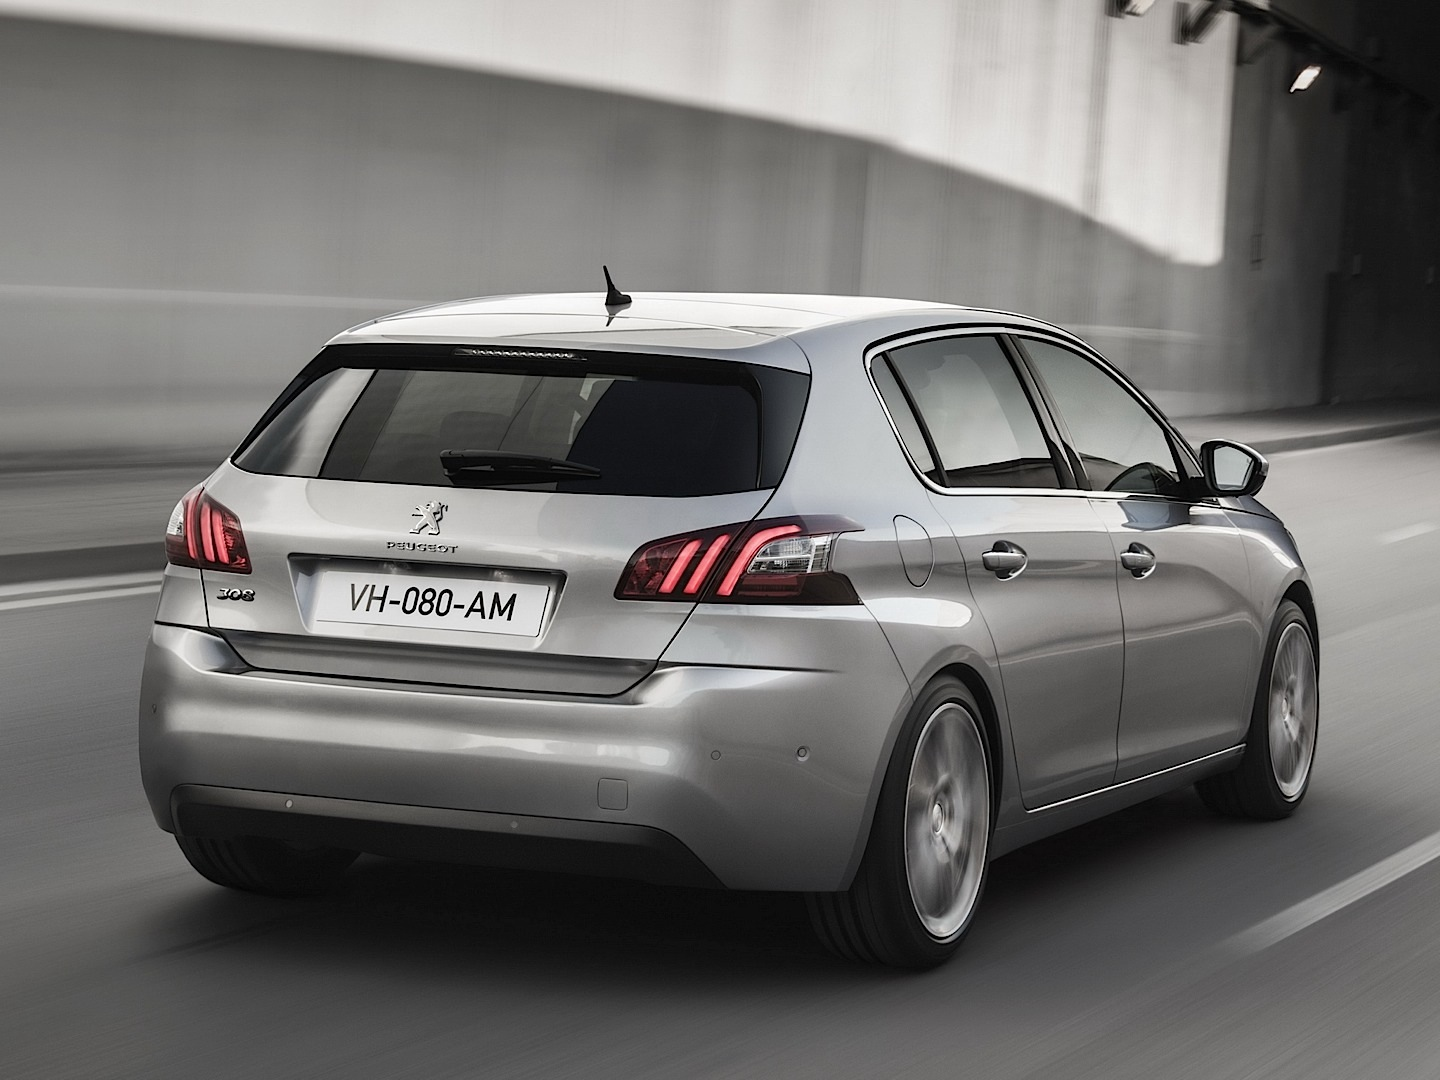 fresh-2014-peugeot-308-photos-leaked-shed-new-light-on-french-compact-photo-gallery_15.jpg?1377525132